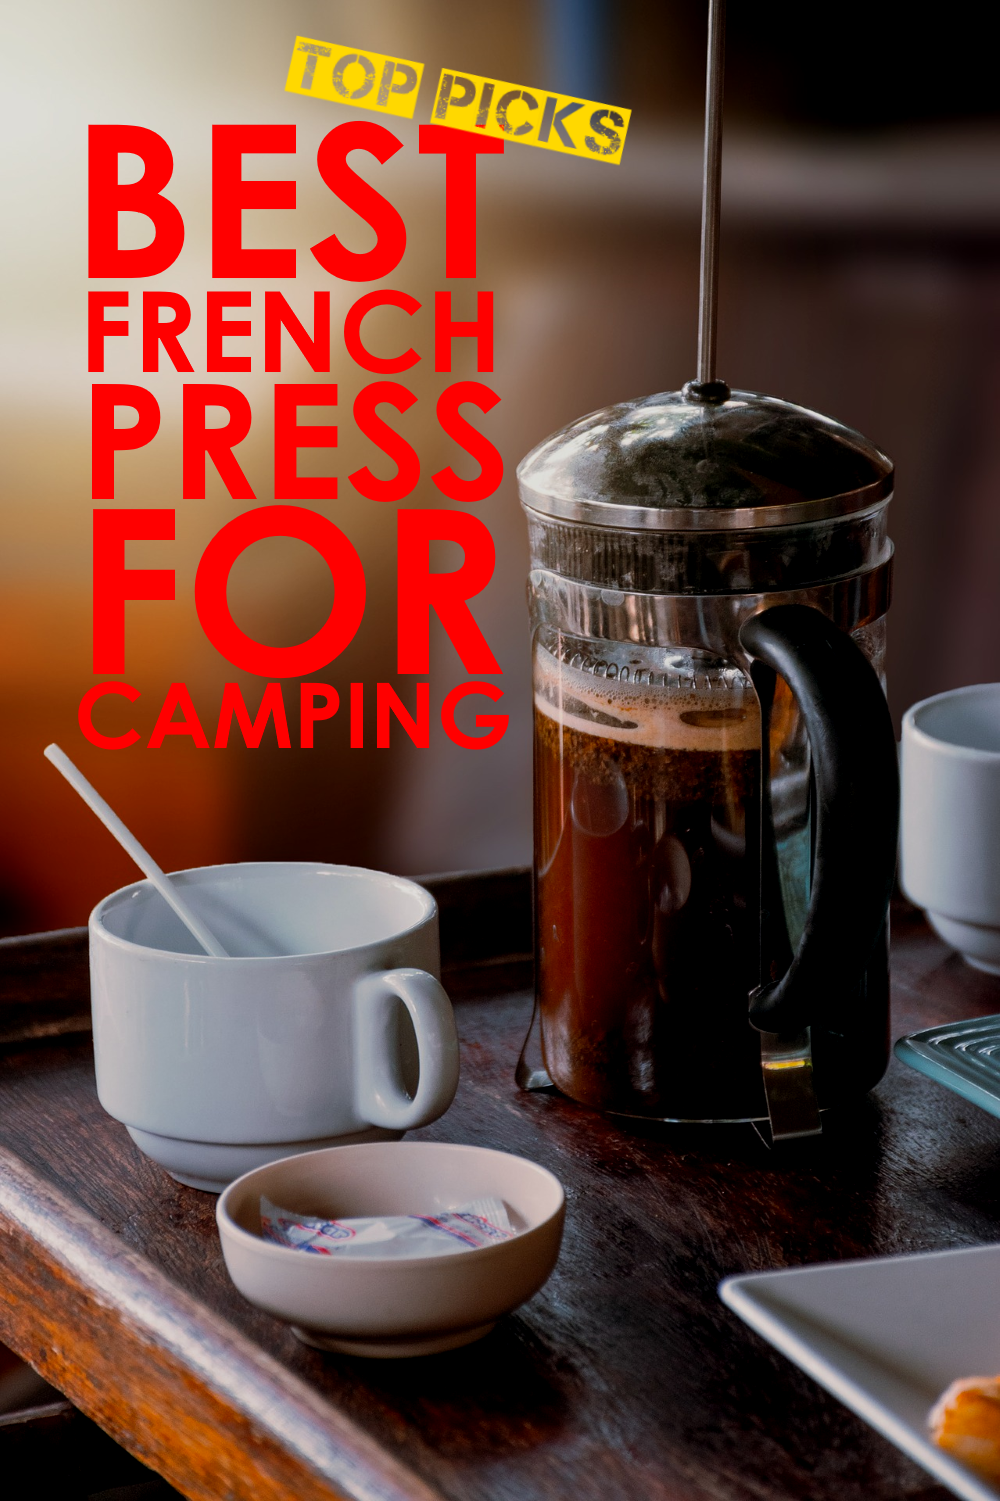 Best French Press for Camping